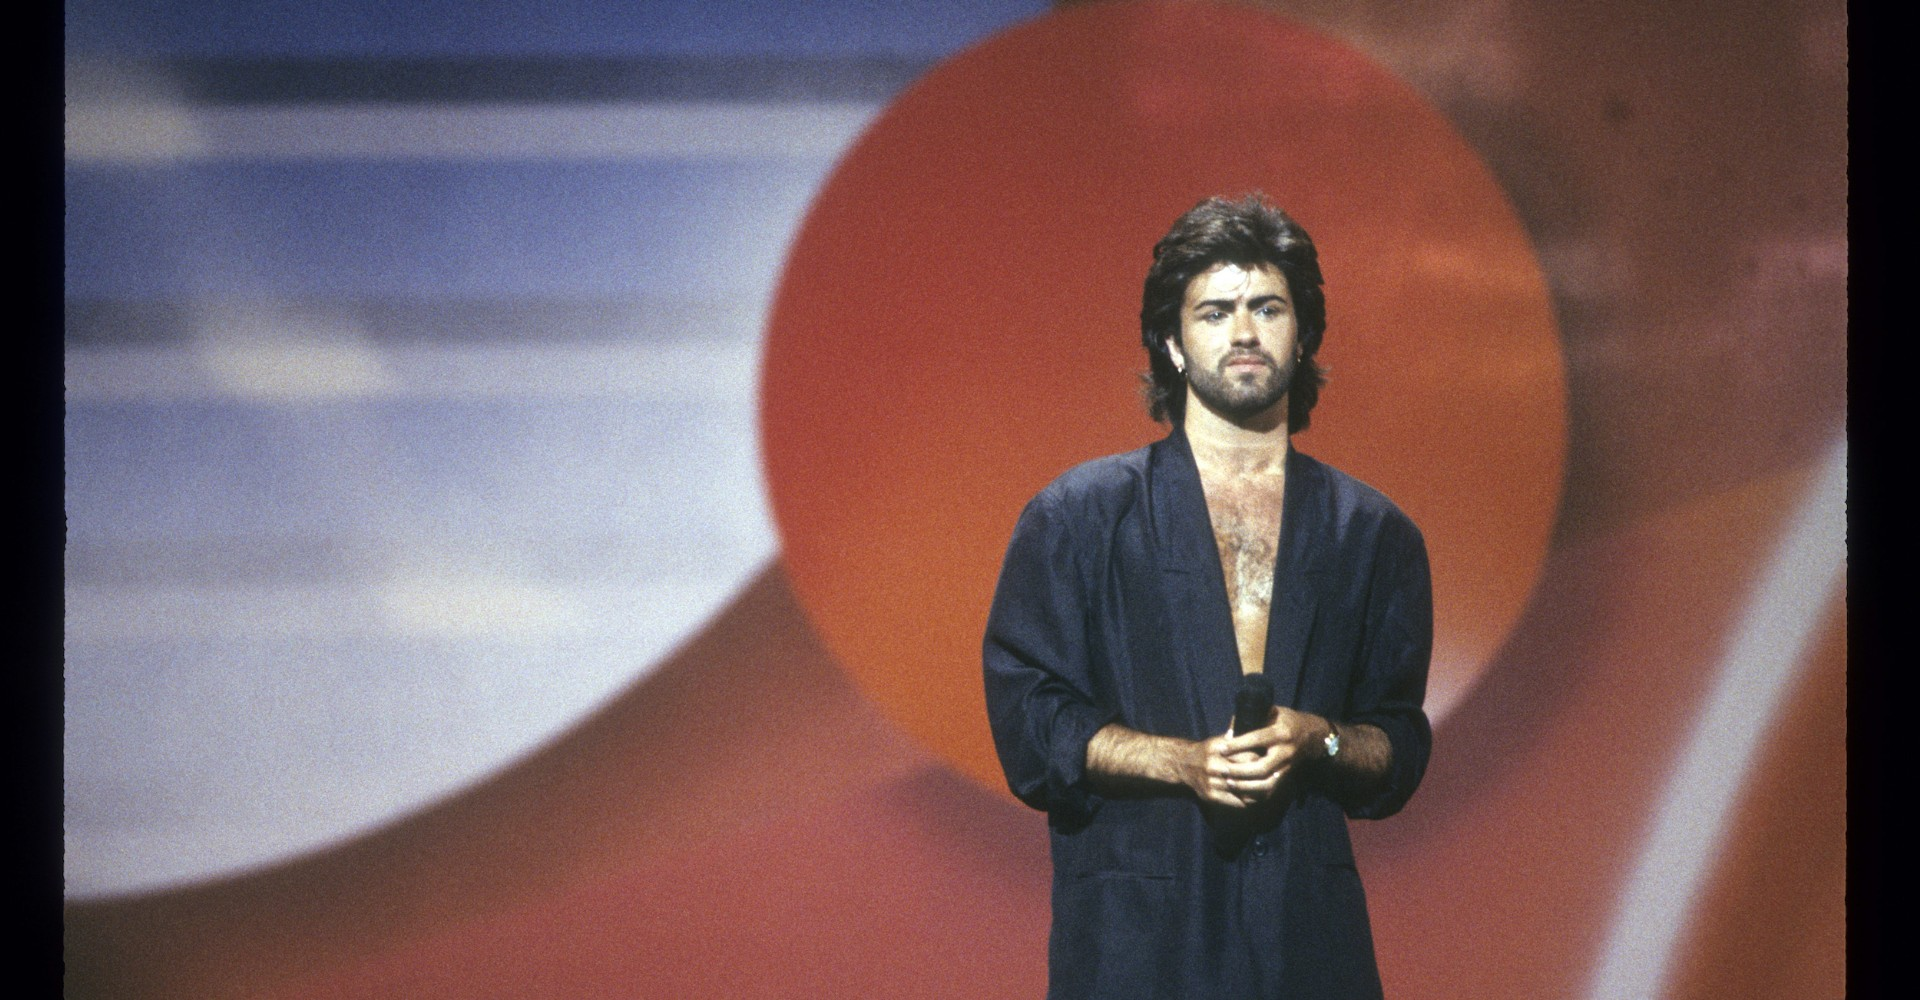 George michael pop superstar has died at 53 new york times - Hold On Hold On I Won T Let You Go On George